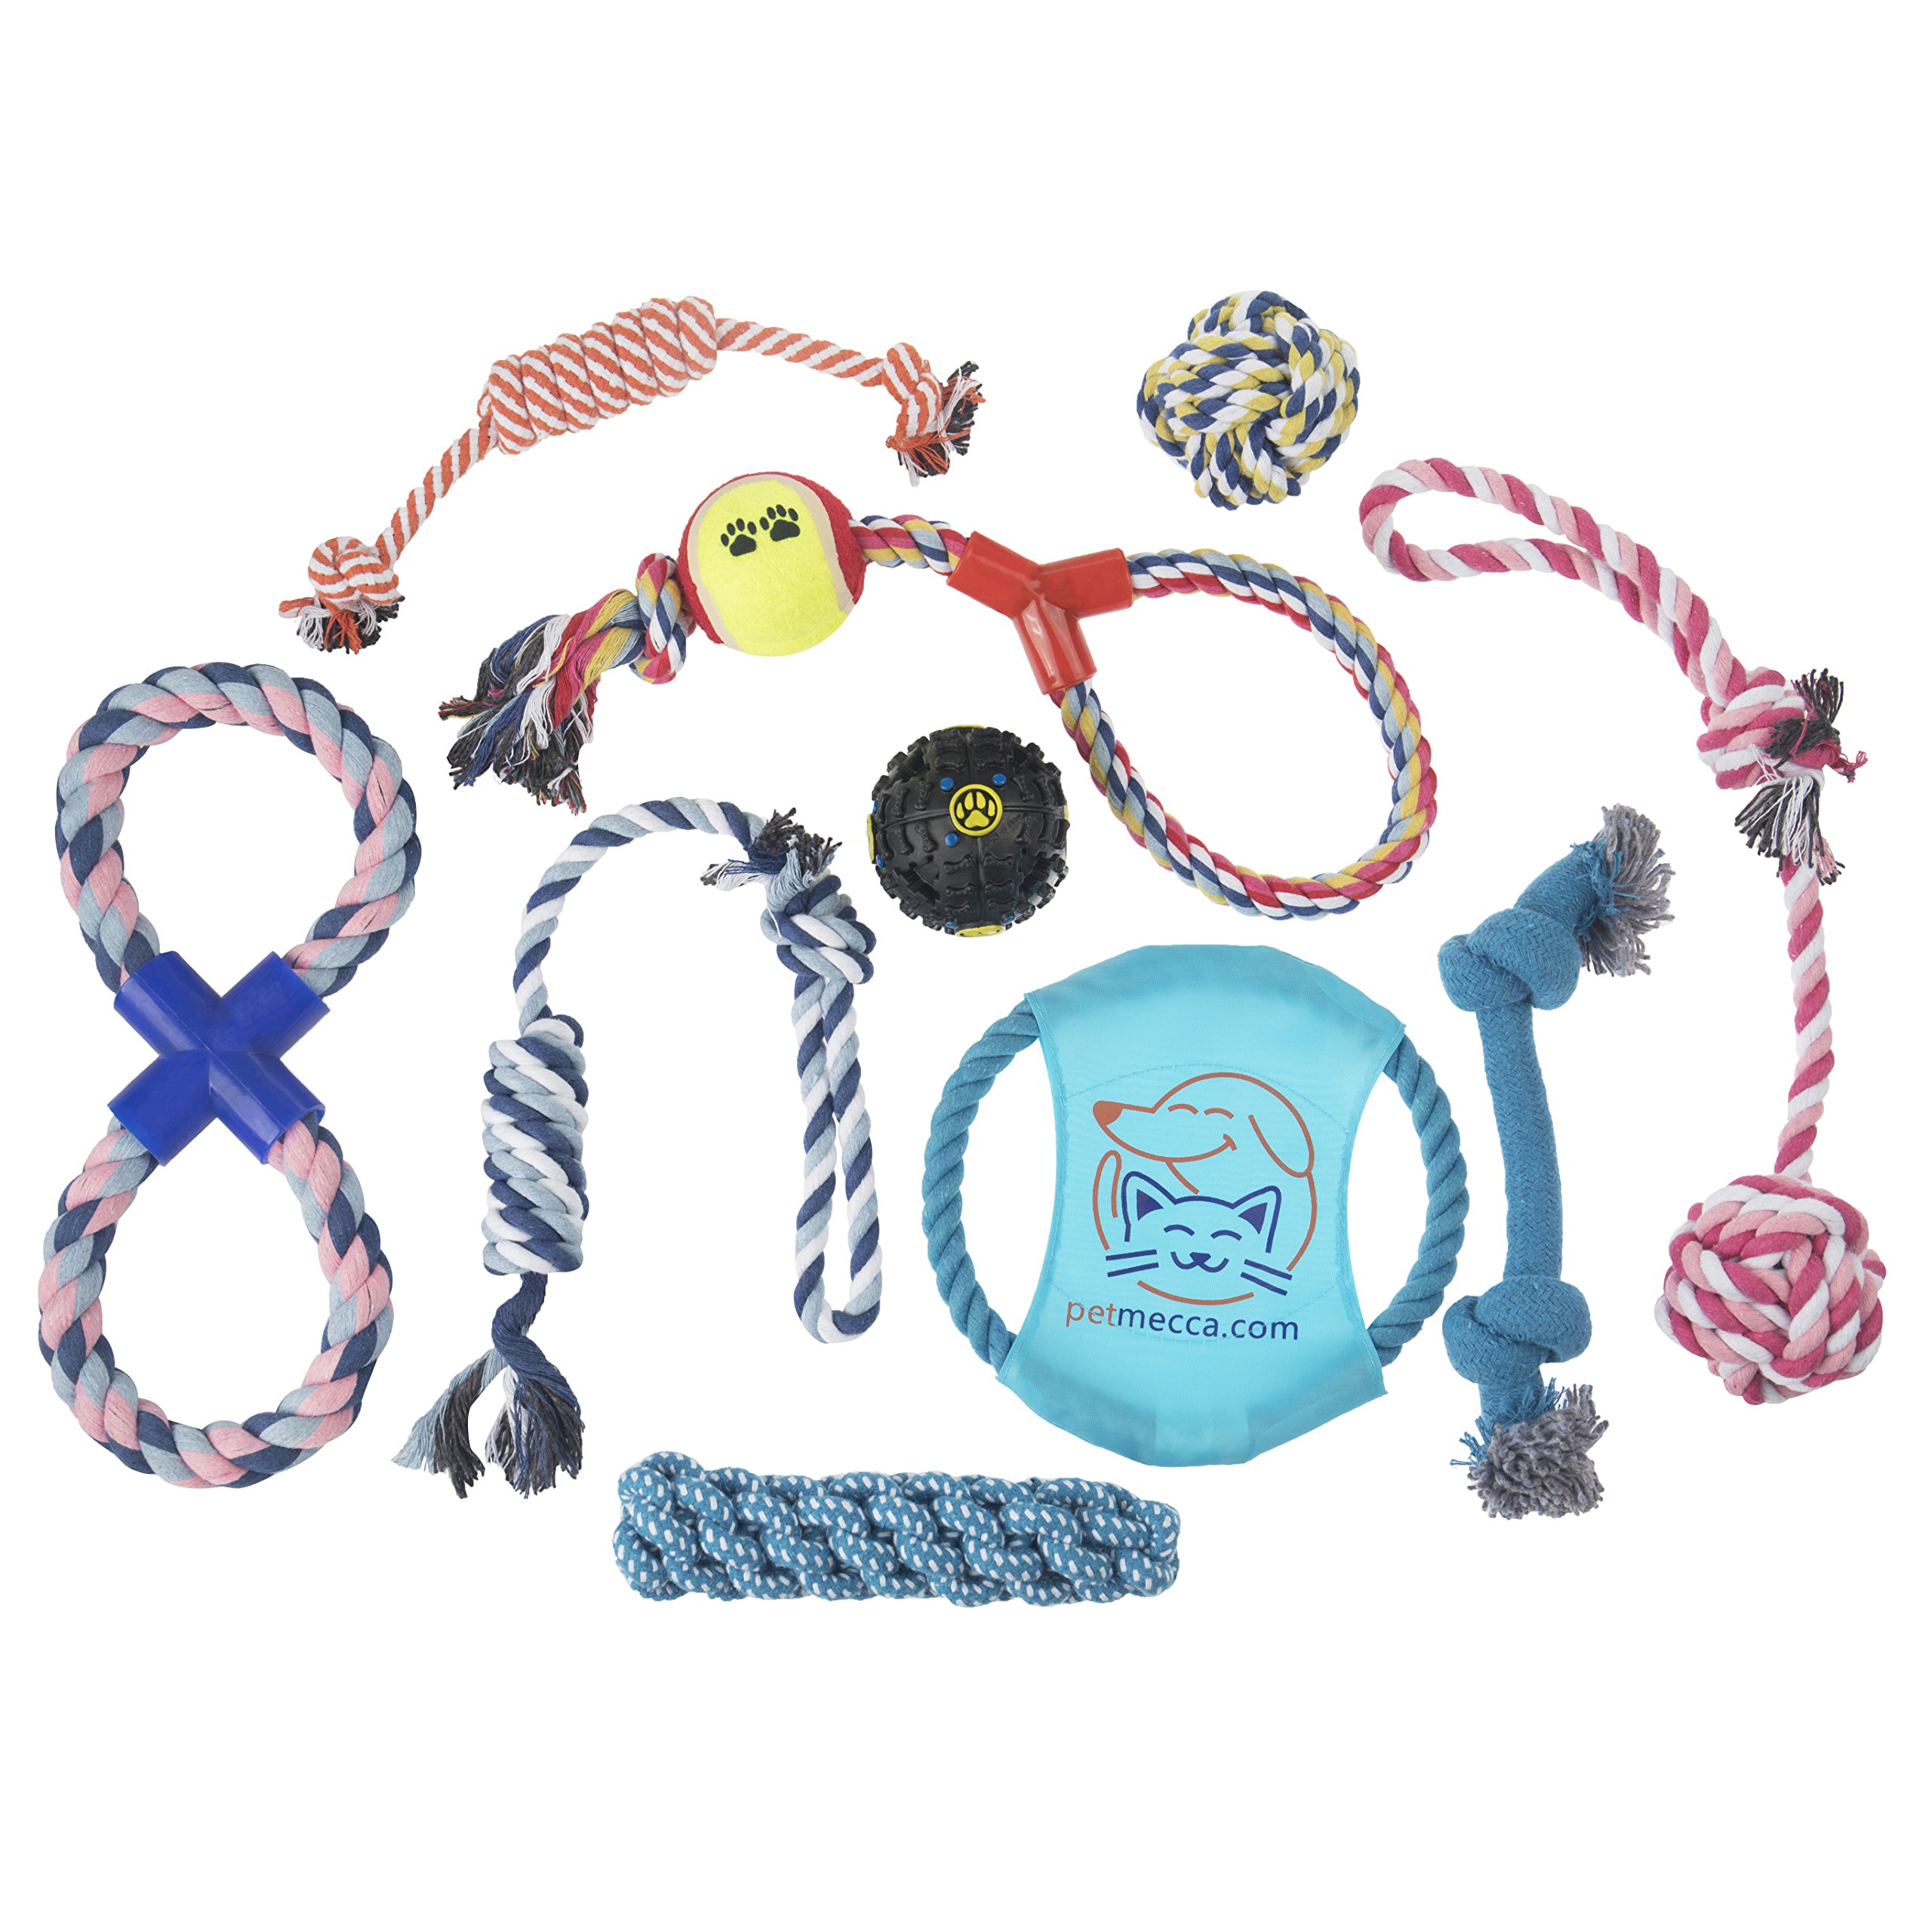 Dog Chew Toys For Small and Large Dogs - Includes Tough, Durable Rope and Ball for Aggressive Chewers and Puppy Teething - Includes Assortment of 10 Toys to Prevent Boredom.